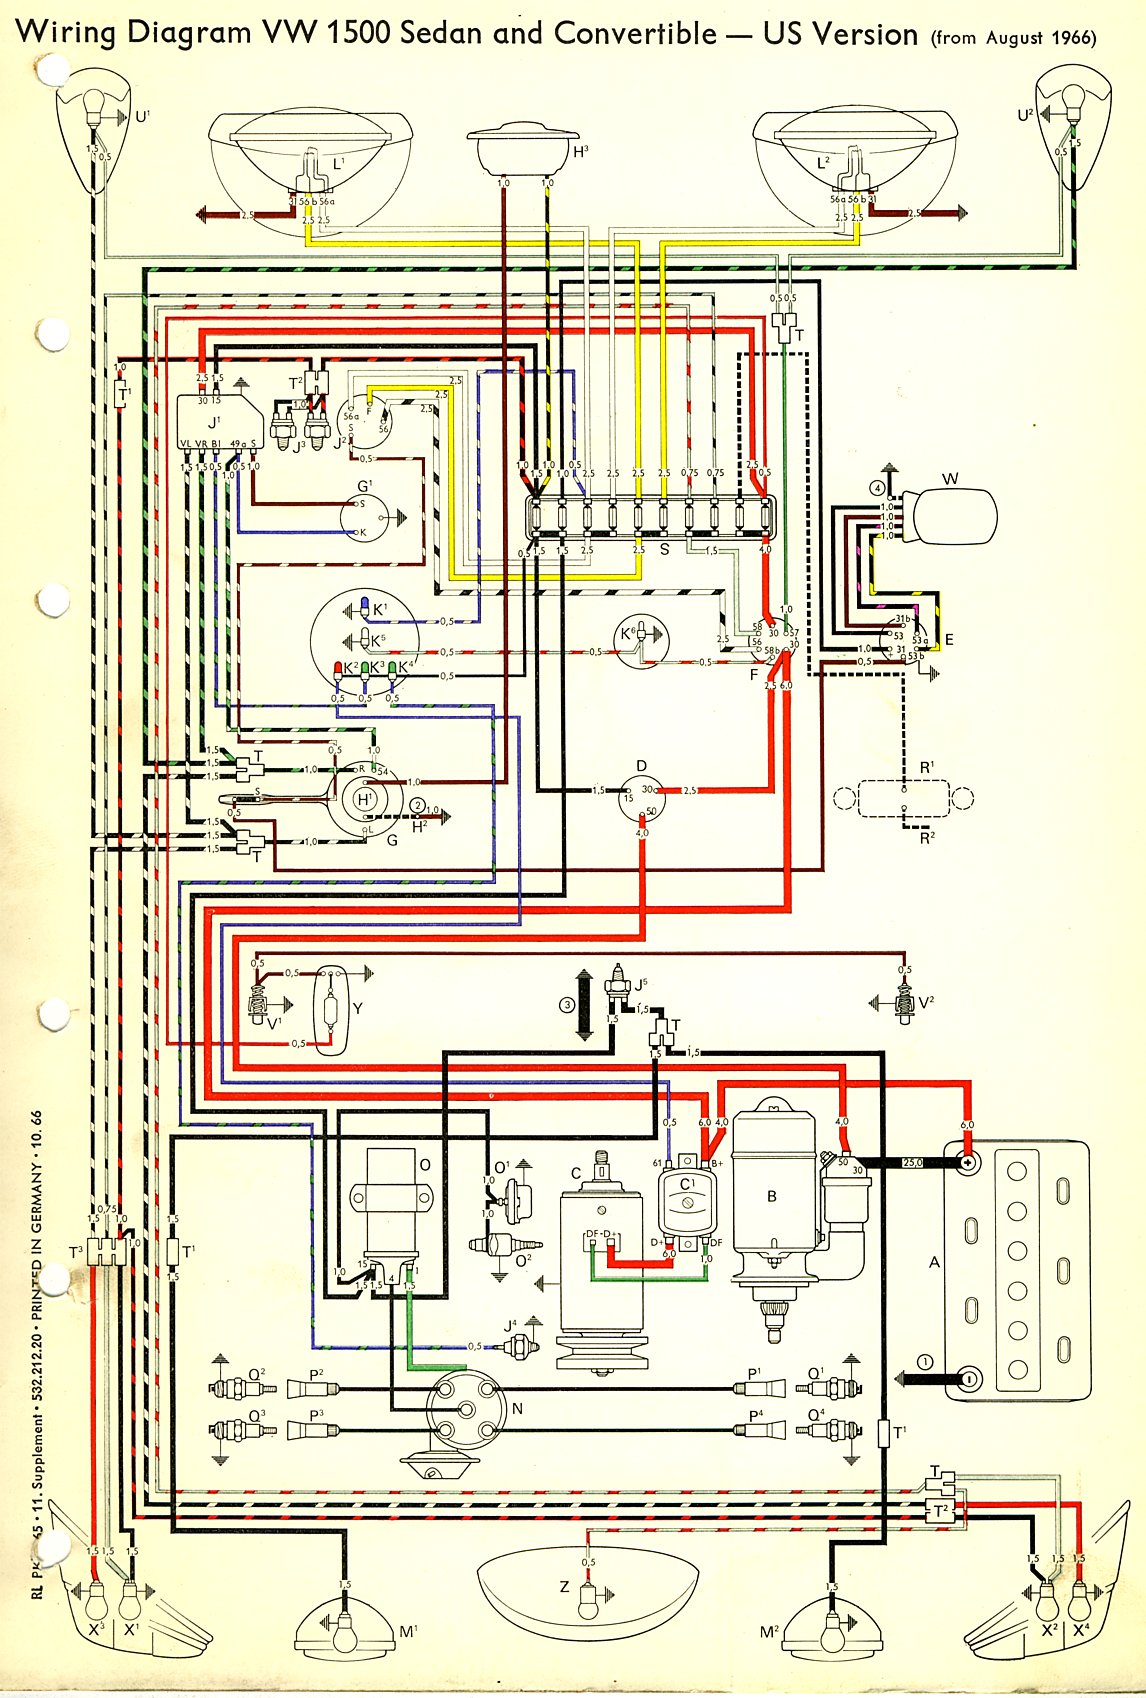 thesamba com type 1 wiring diagrams rh thesamba com Simple Wiring Diagrams Residential Electrical Wiring Diagrams